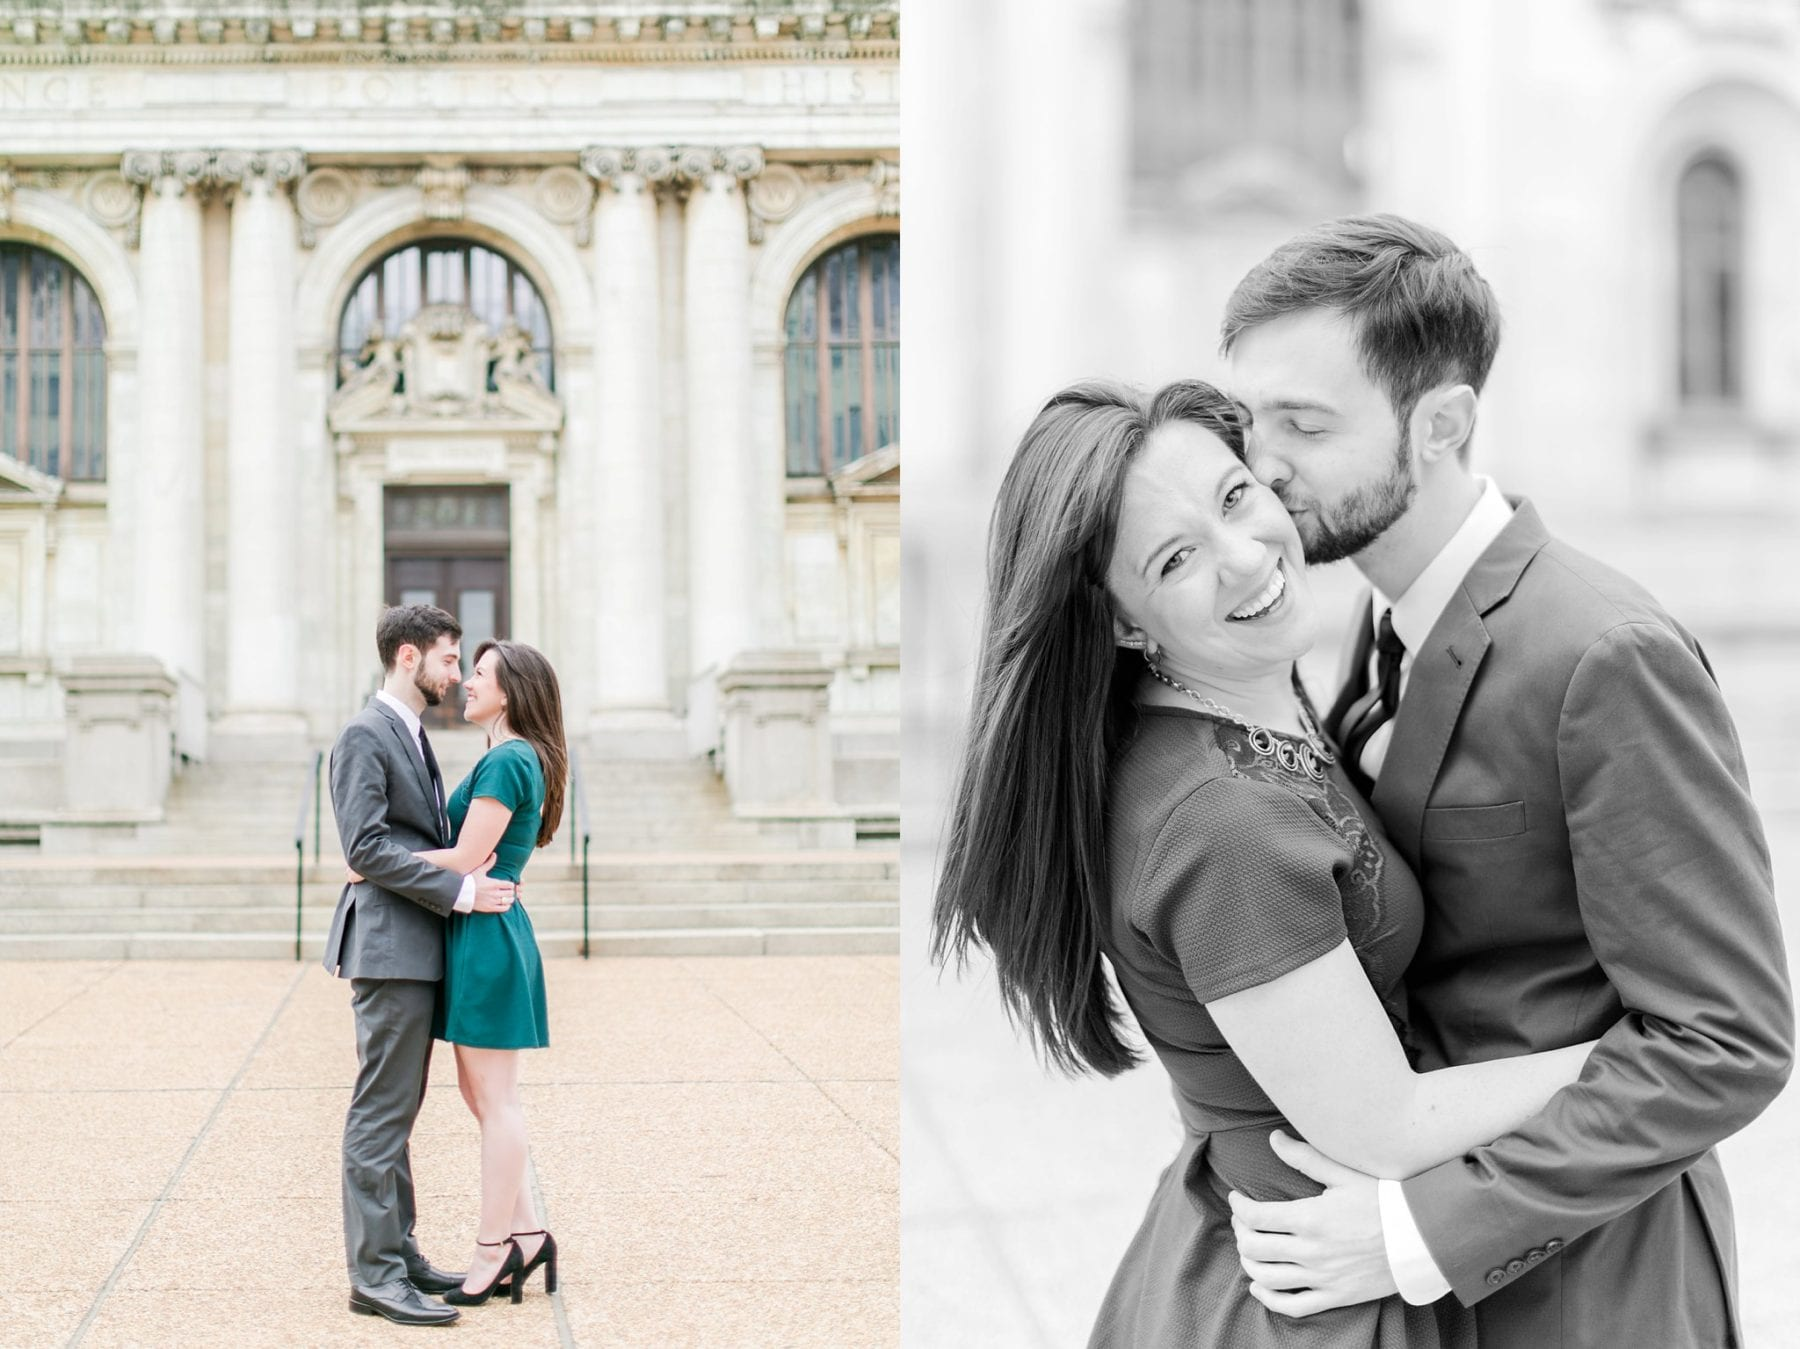 Downtown Washington DC Engagement Photos Megan Kelsey Photography Virginia Wedding Photographer Erin & Mike-0802.jpg